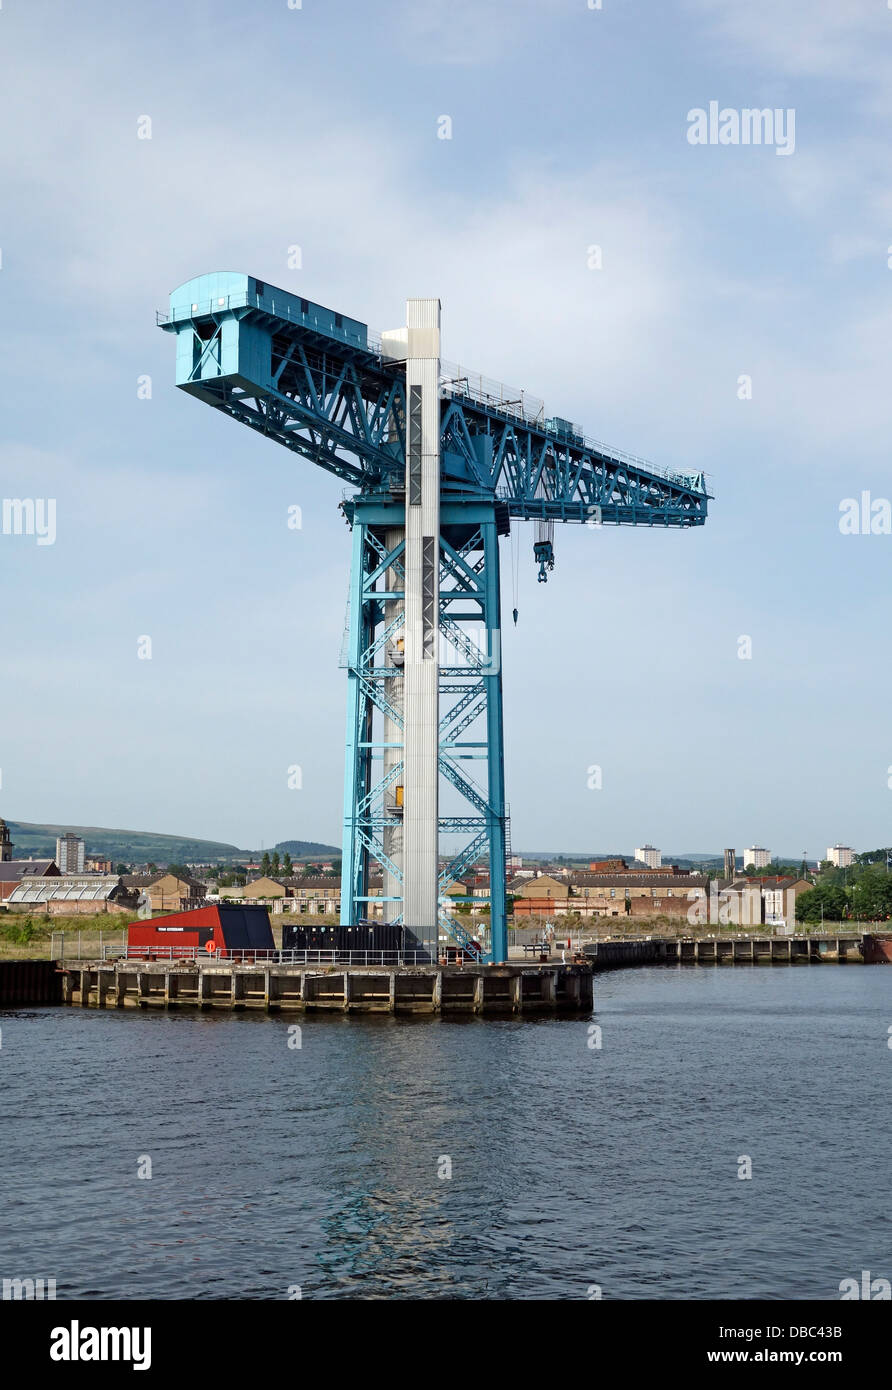 The Titan Crane in Clydebank Scotland on the site of the old John Brown shipyard as seen from the River Clyde - Stock Image